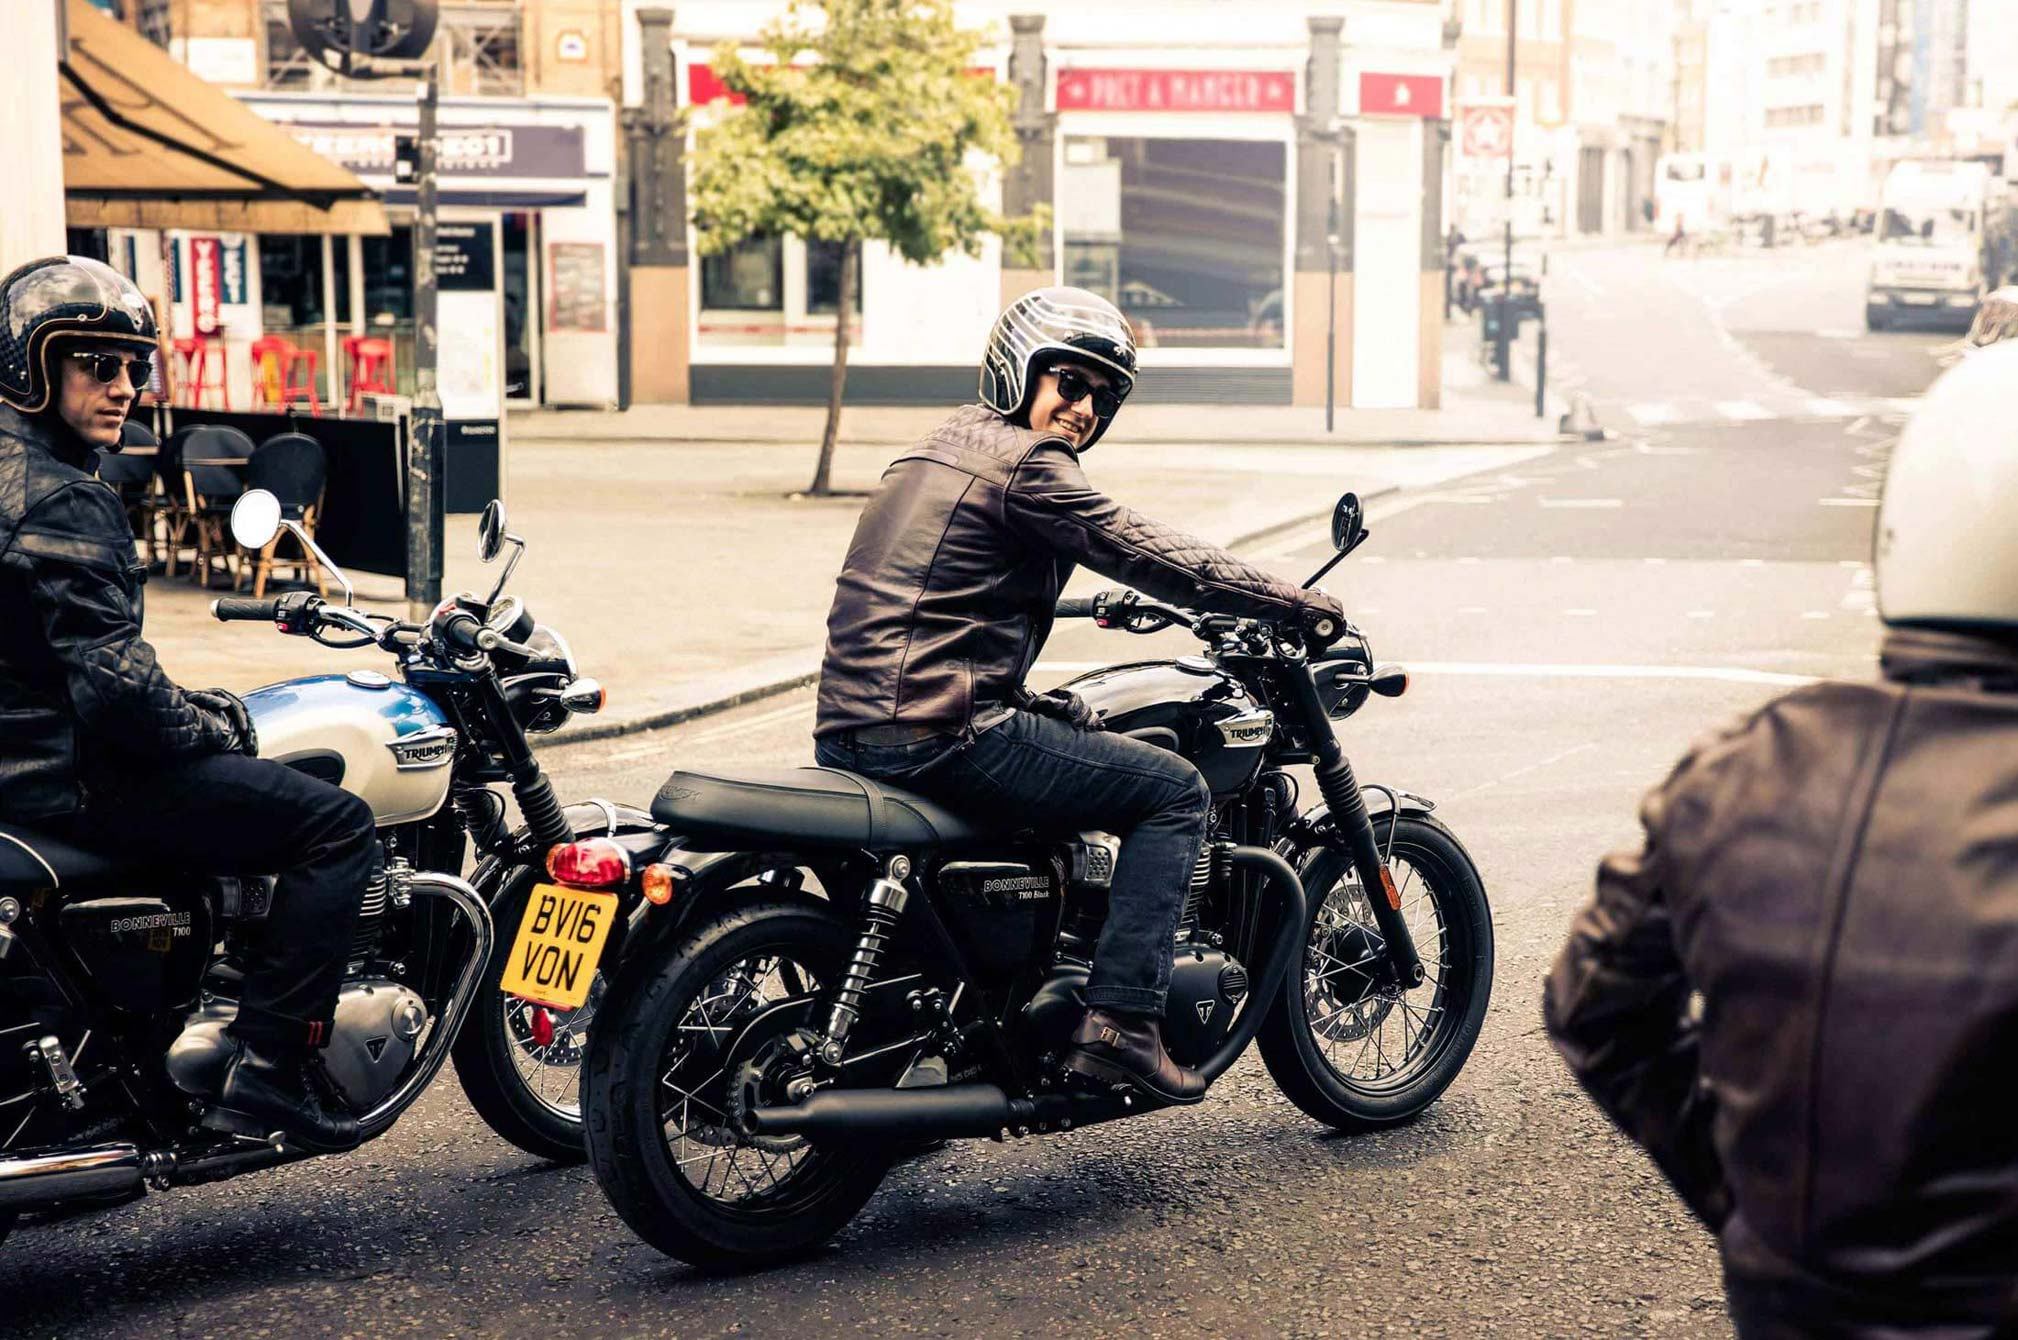 2018 Triumph Bonneville T100 Black Review - TotalMotorcycle